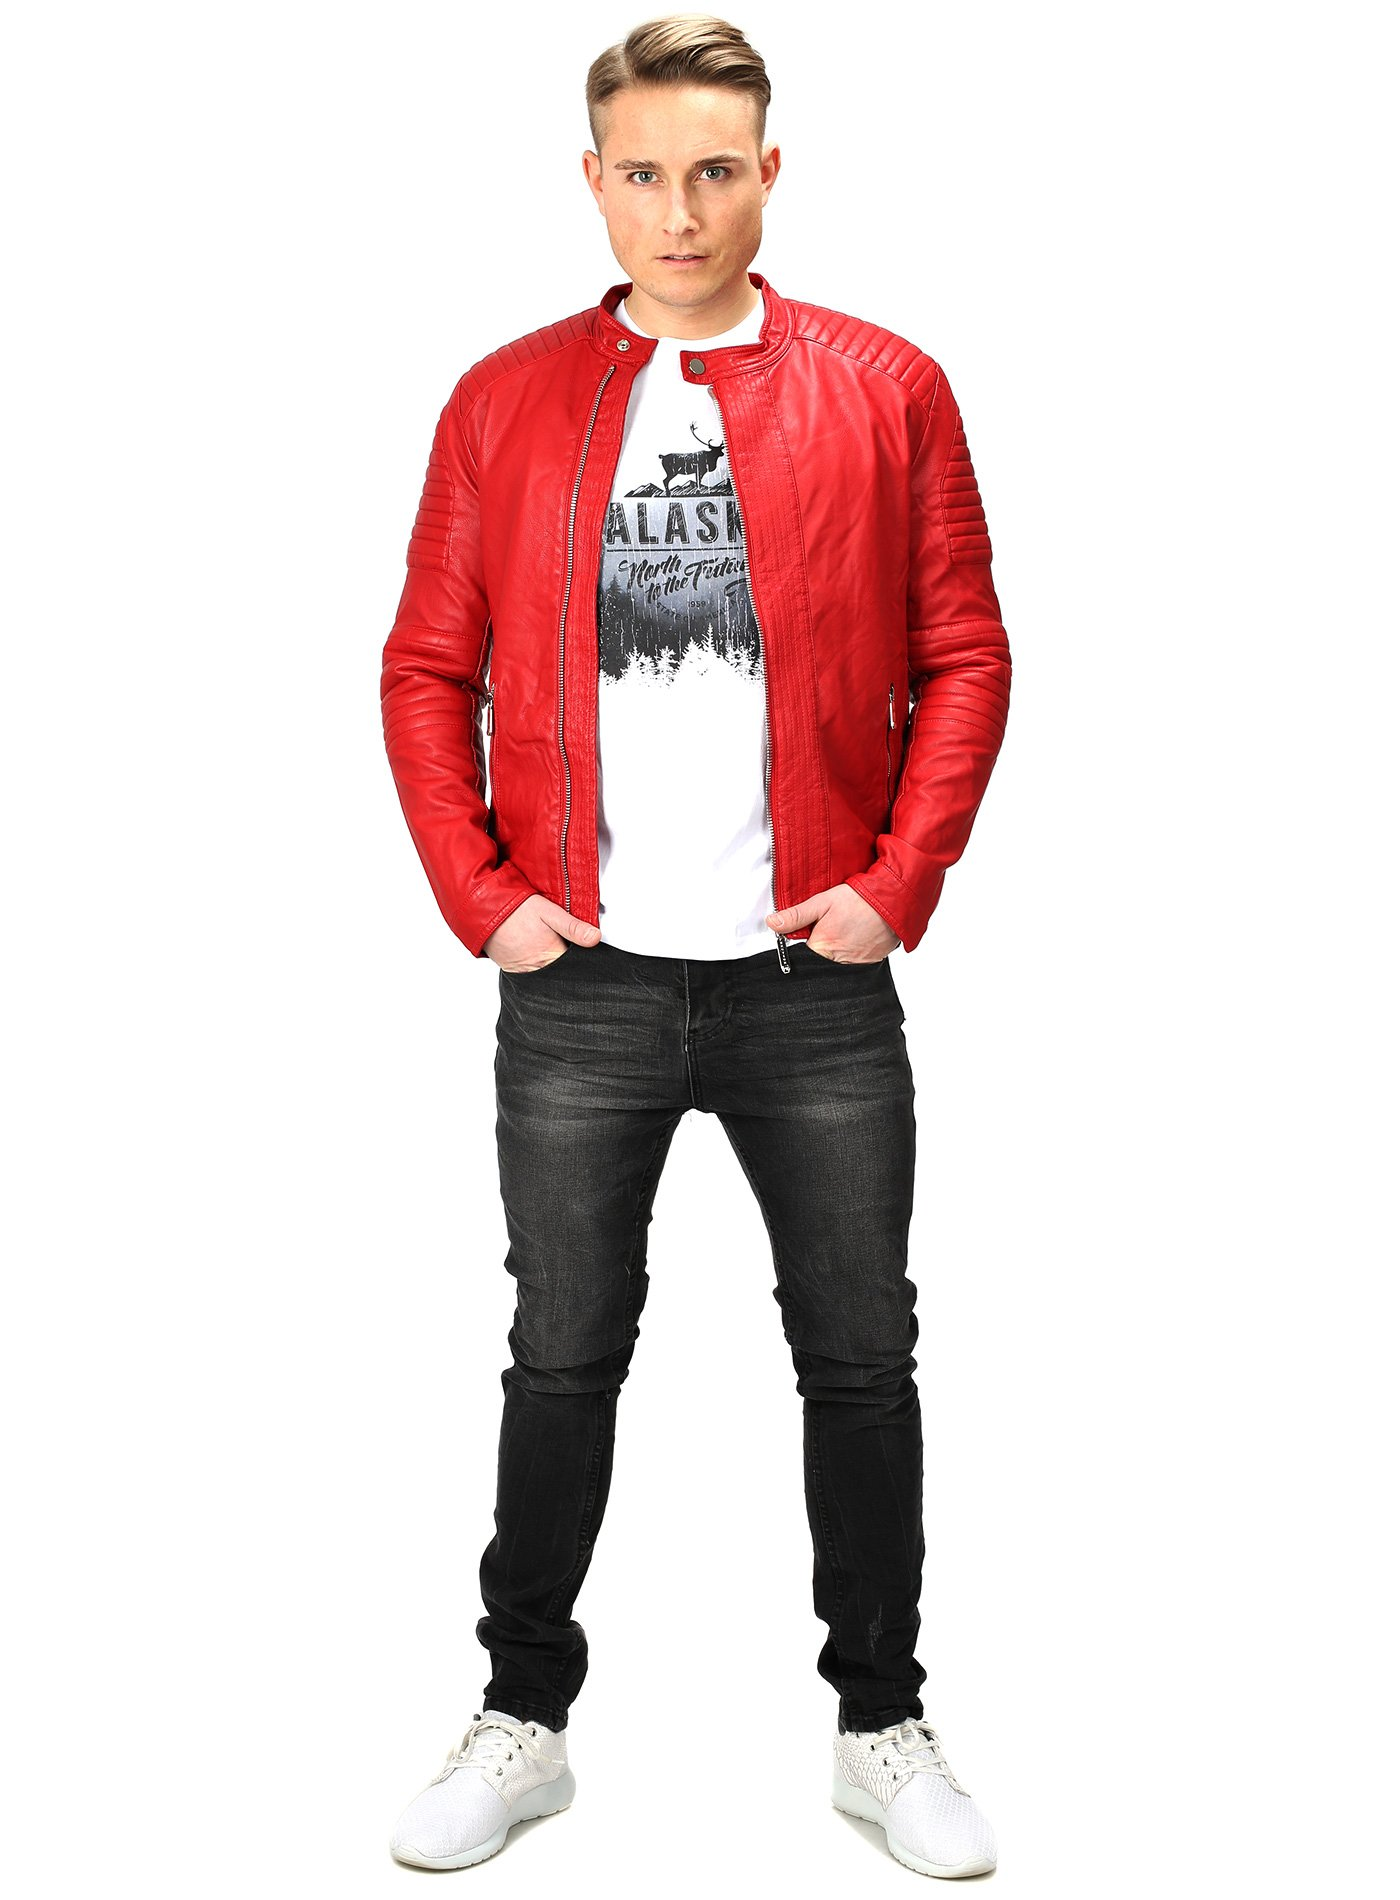 red-leather-jacket-64743.jpg